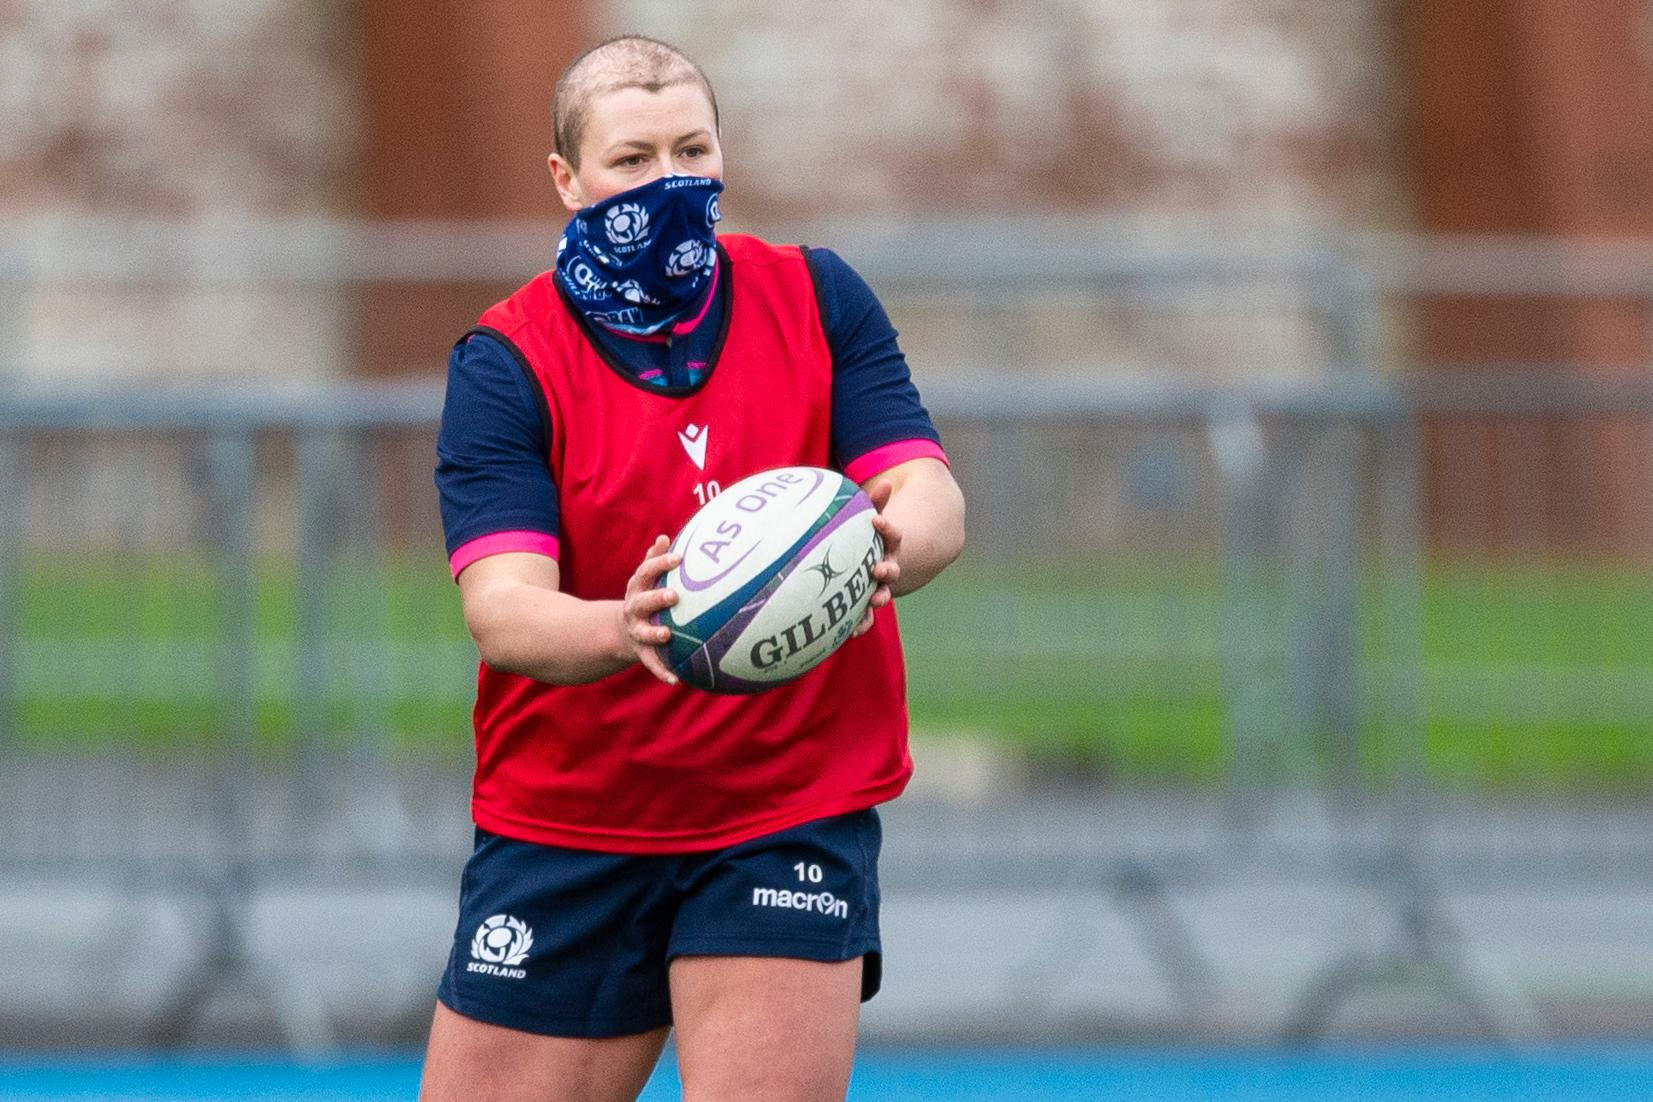 Scotland return to the fray in Women's Six Nations after eight-month lay-off